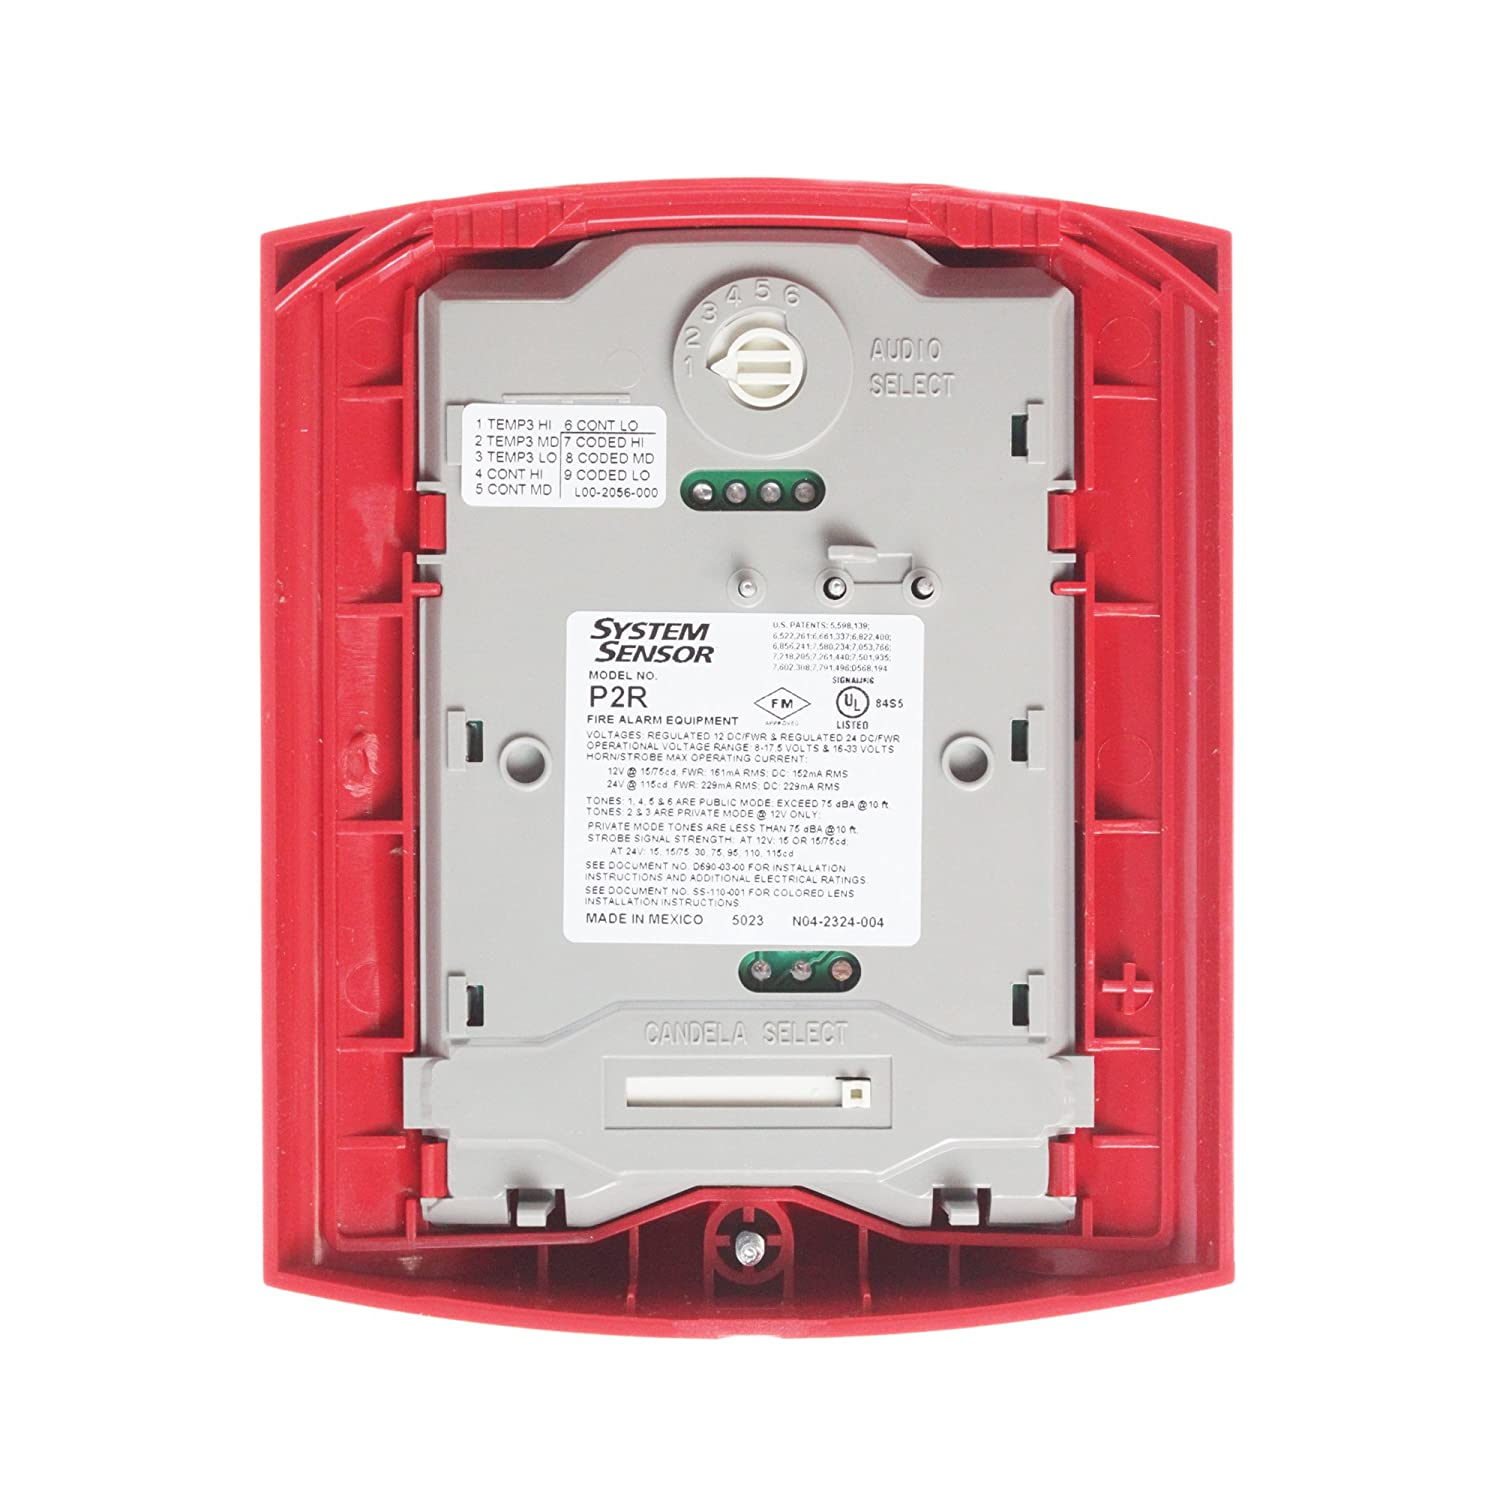 Horn strobe wall wire candela red fire alarm jpg 1500x1500 Strobes fire  alarm pull station